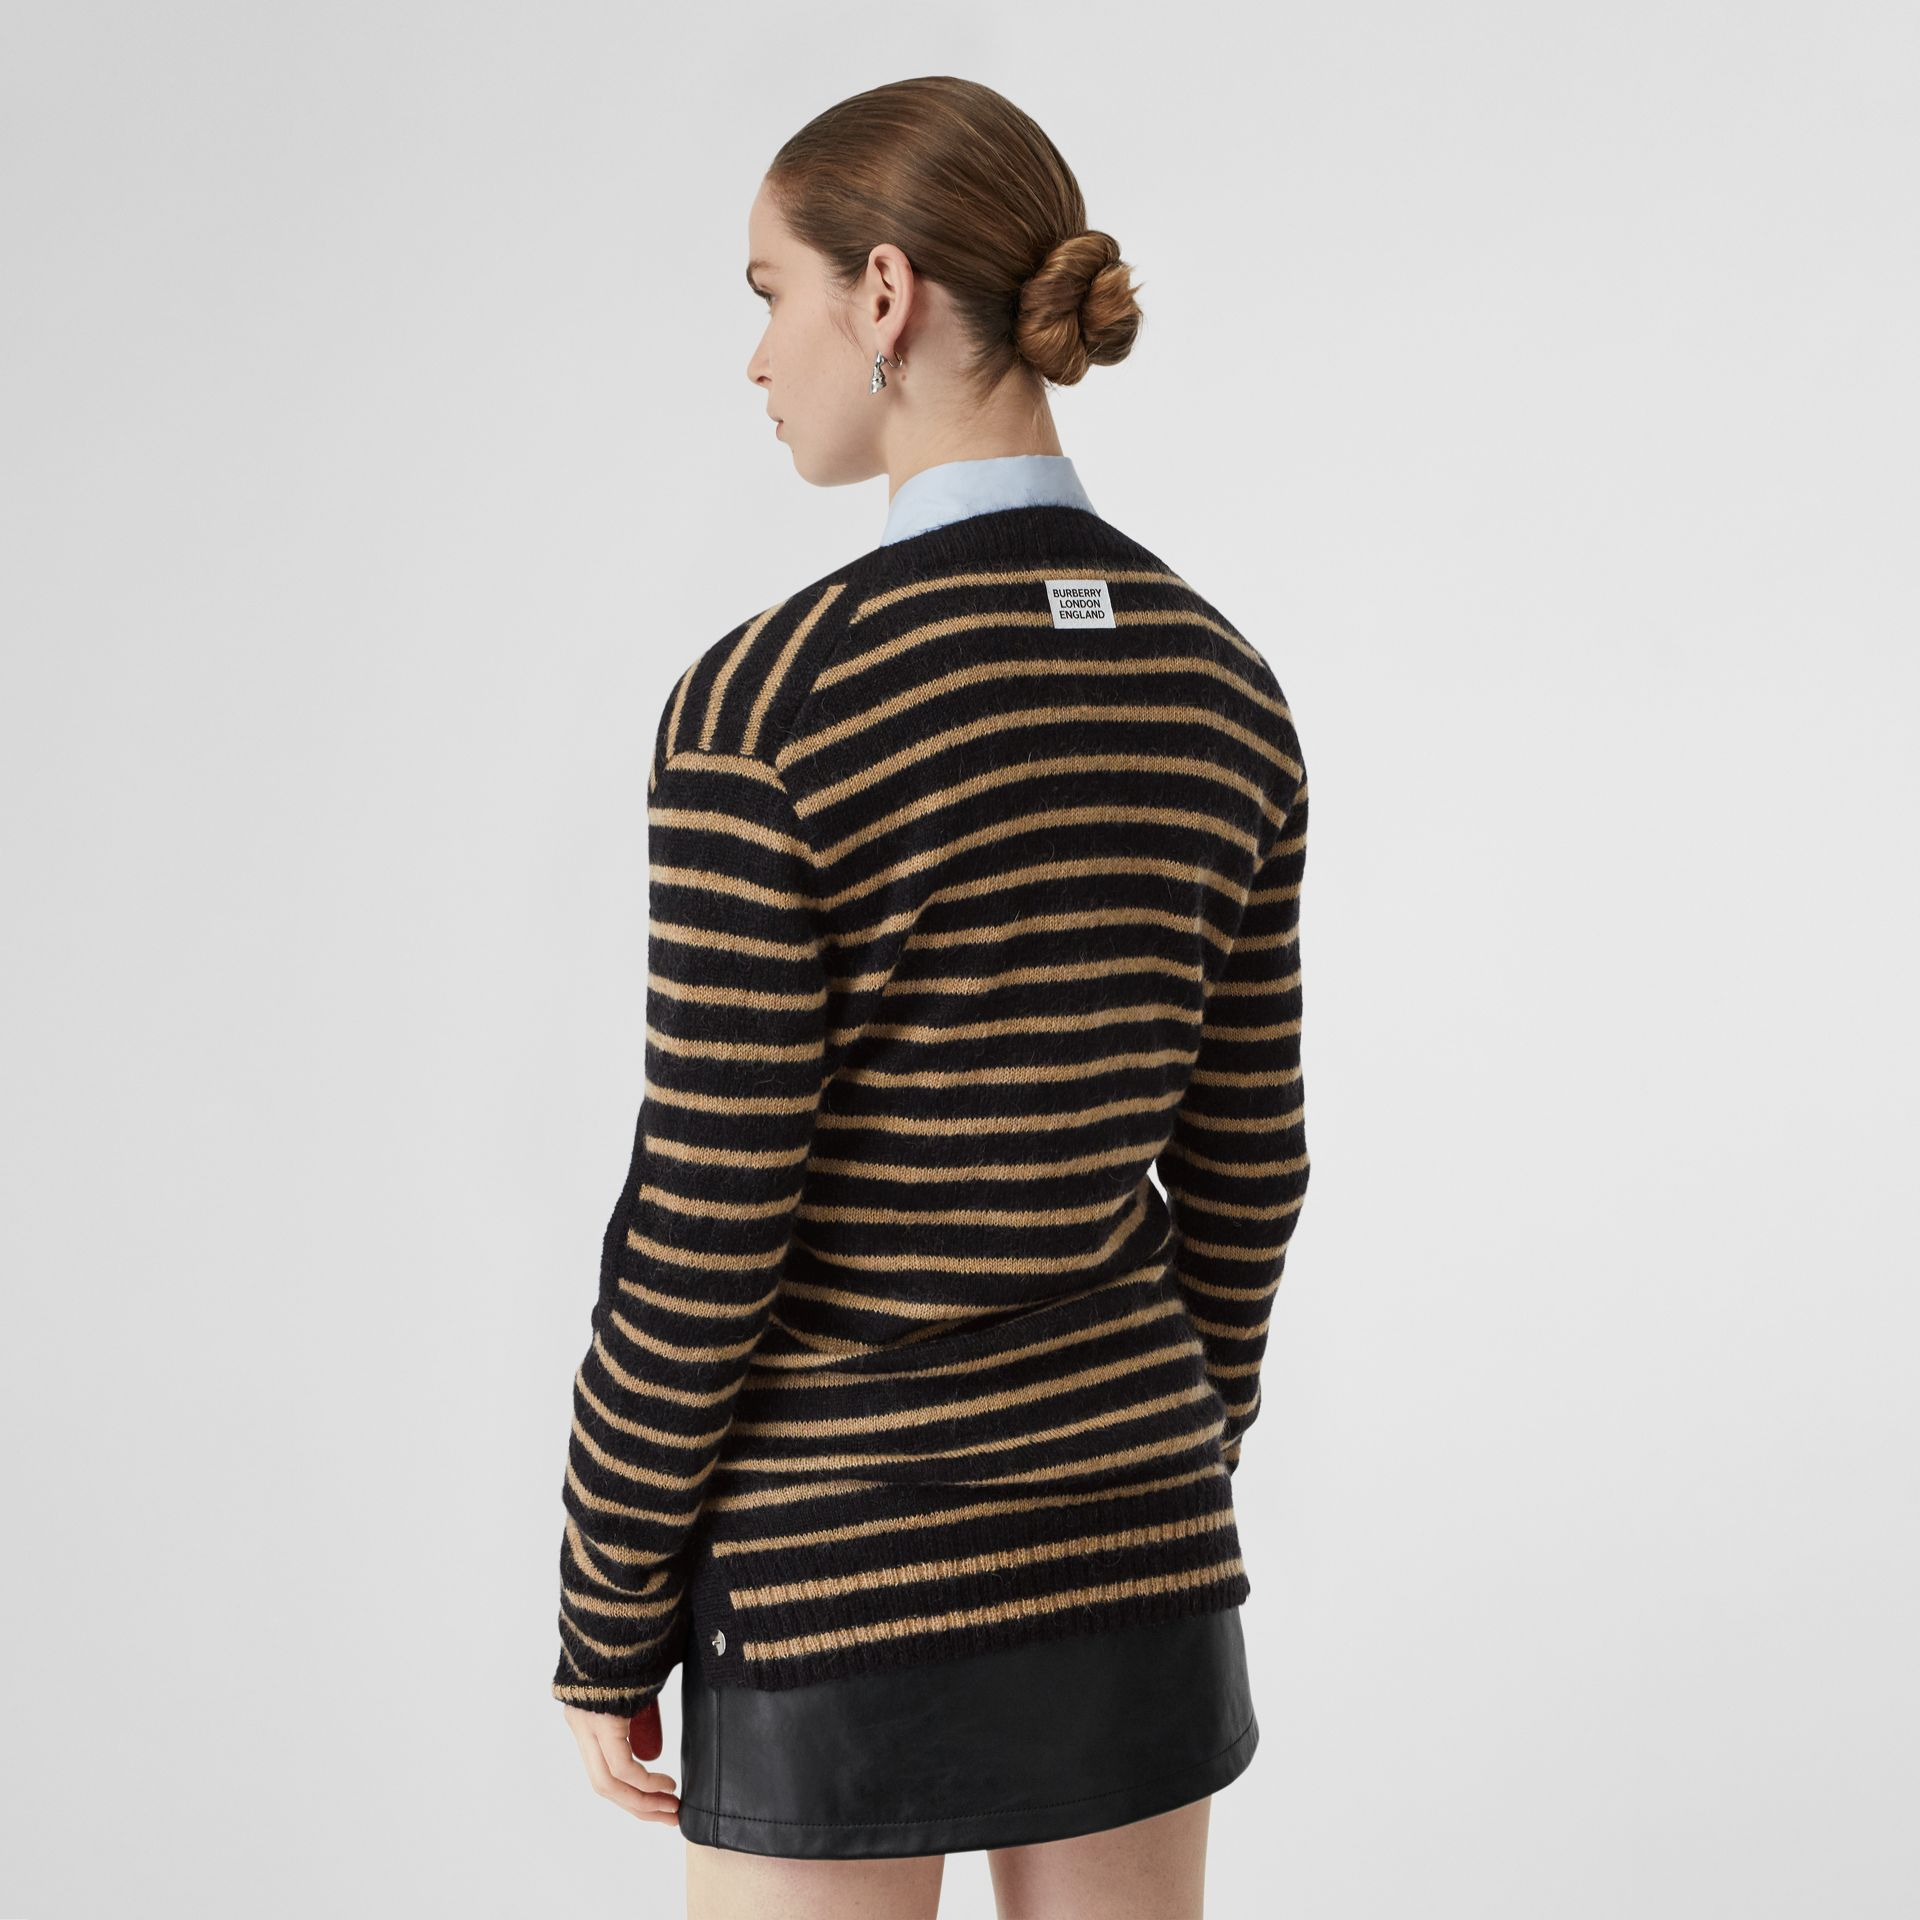 Montage Print Striped Mohair Wool Blend Sweater in Black/honey - Women | Burberry Australia - gallery image 2